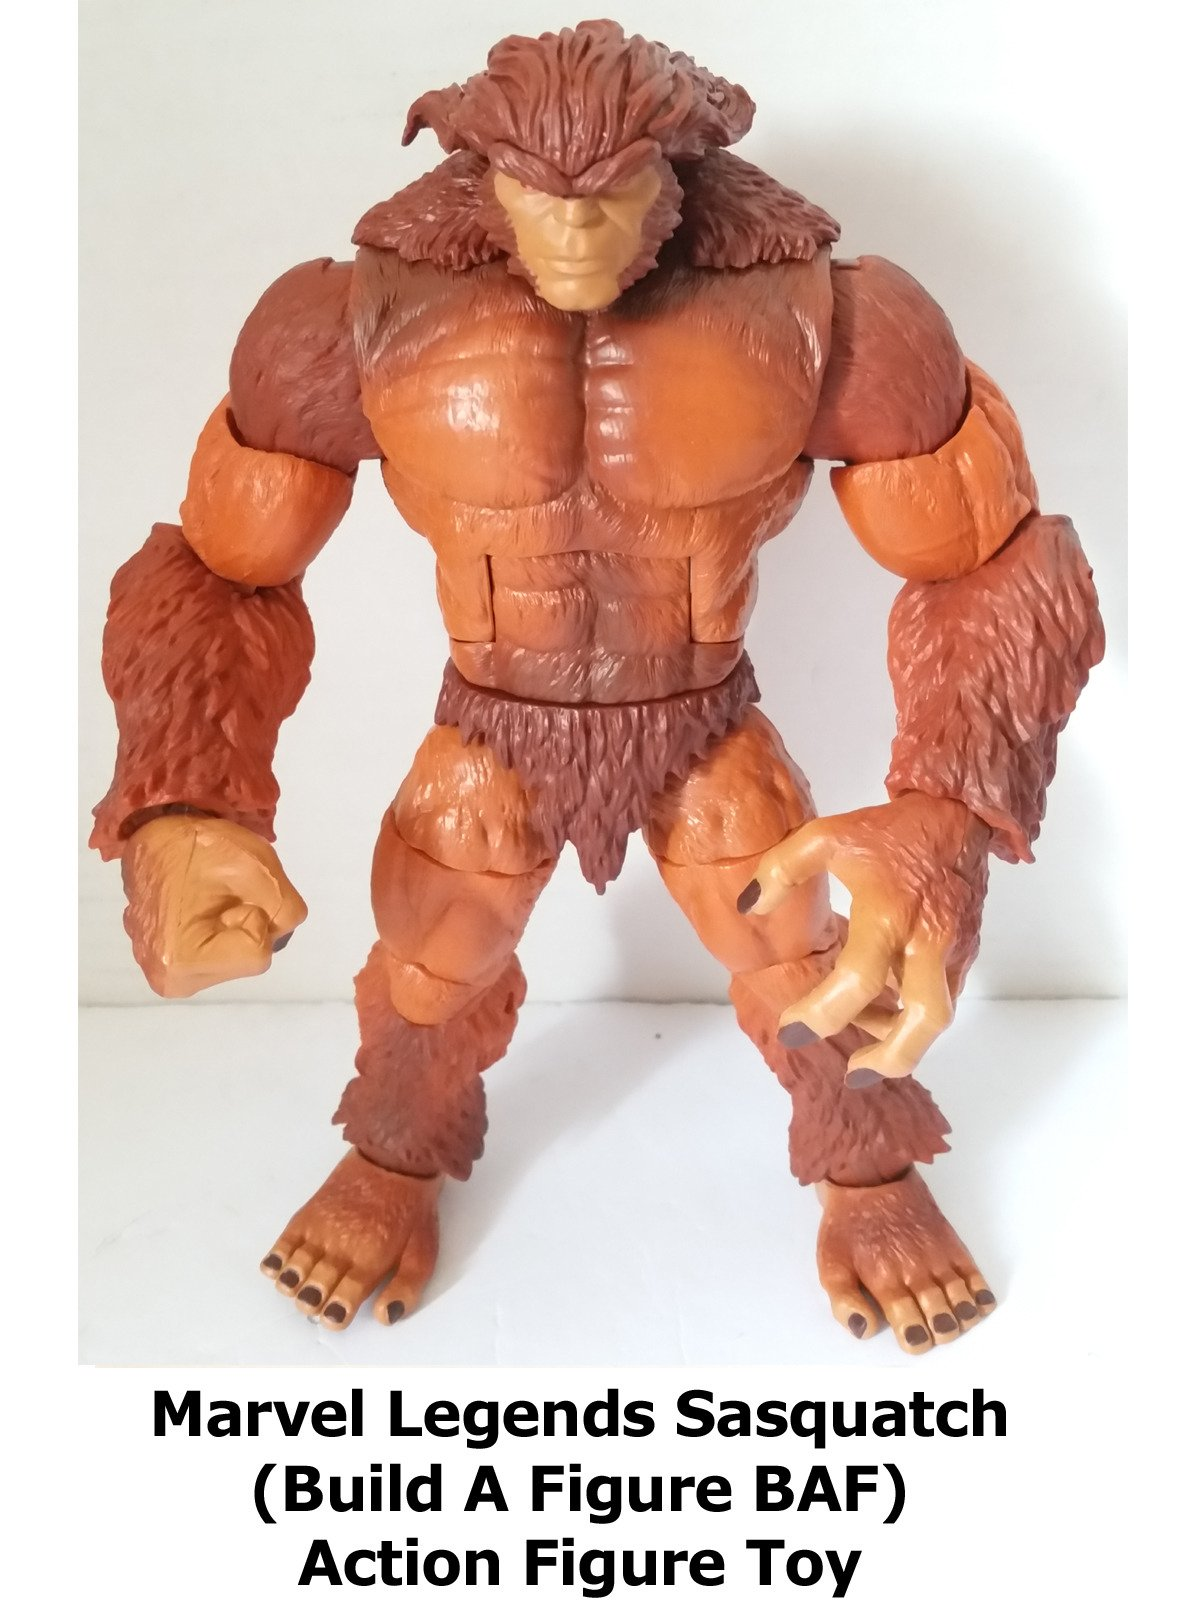 Review: Marvel Legends Sasquatch (Build A Figure BAF) Action Figure Toy